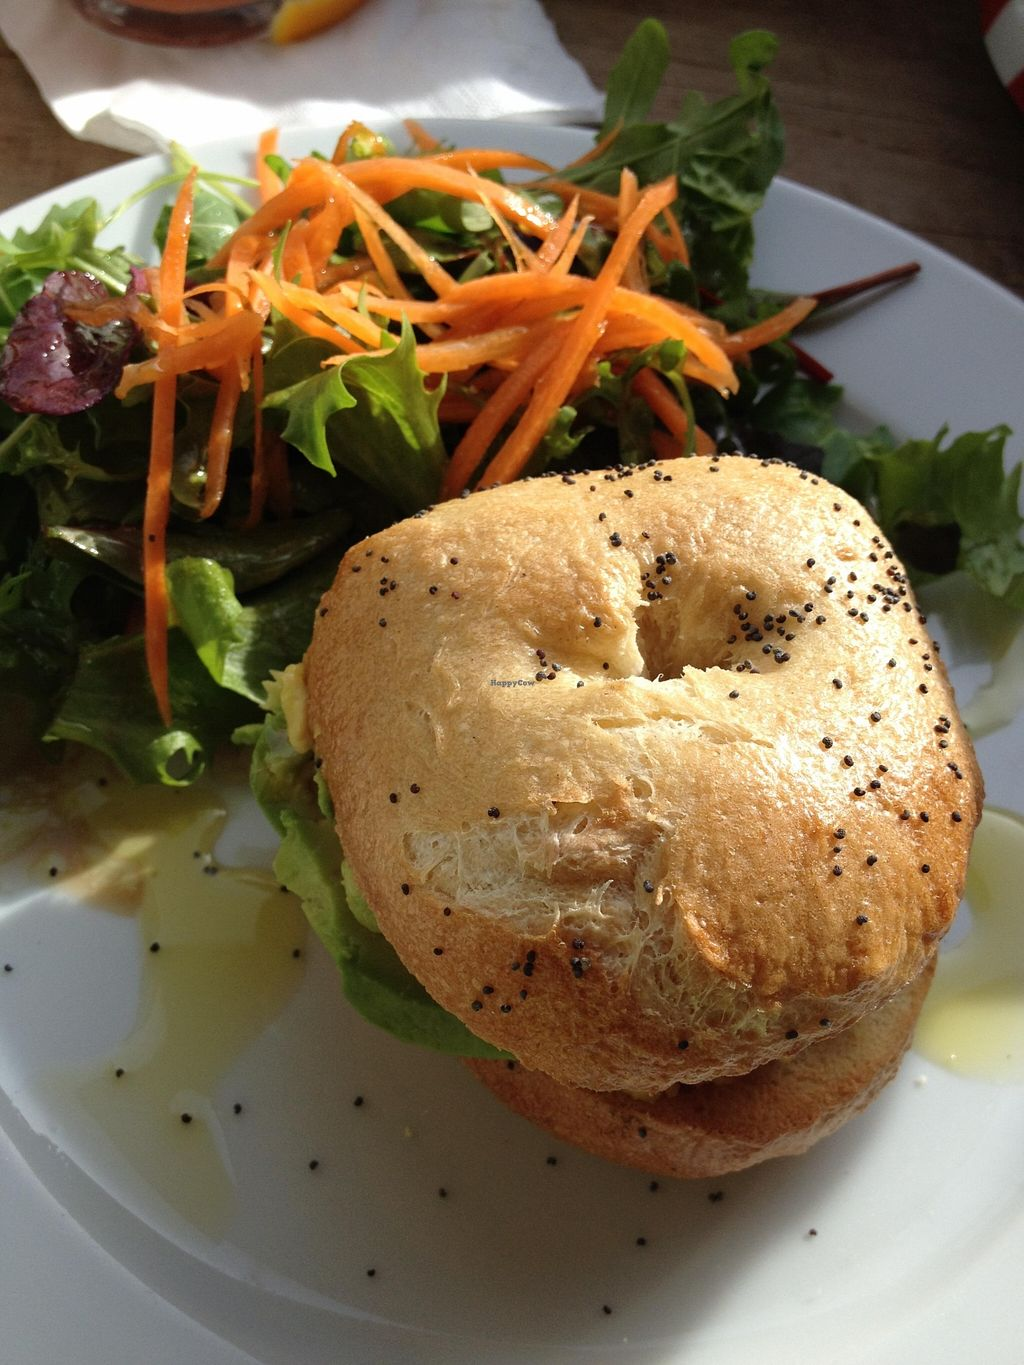 """Photo of Espresso Library  by <a href=""""/members/profile/chapstick"""">chapstick</a> <br/>Sunday brunch special - fresh, locally-baked bagel with red pepper hummus, avocado, sun-dried tomato; and delicious dressing on the side salad! <br/> October 28, 2015  - <a href='/contact/abuse/image/65013/122946'>Report</a>"""